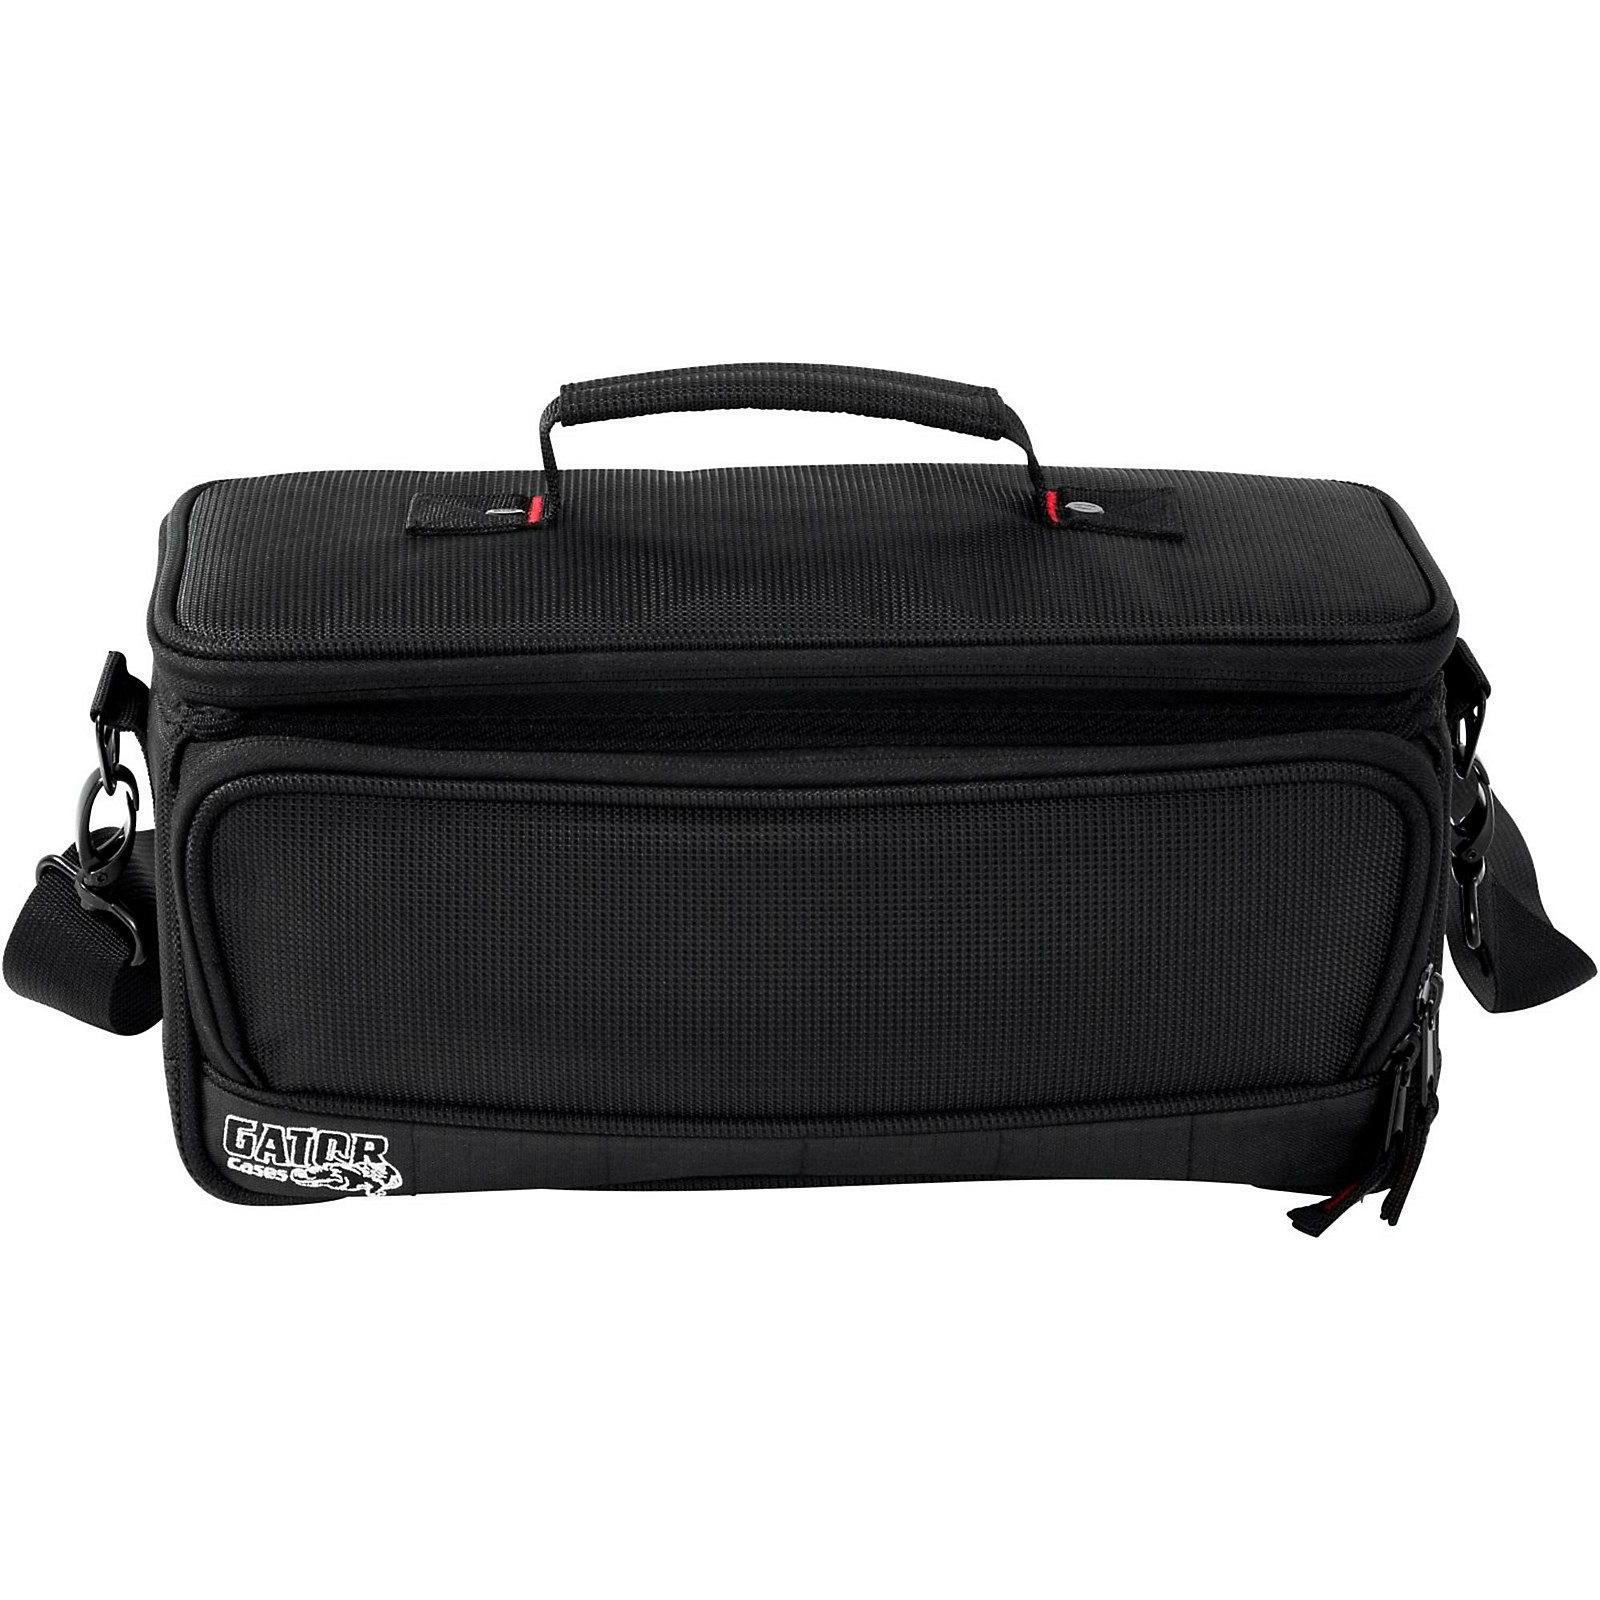 Gator Padded Carry Bag for X Air Series Mixers